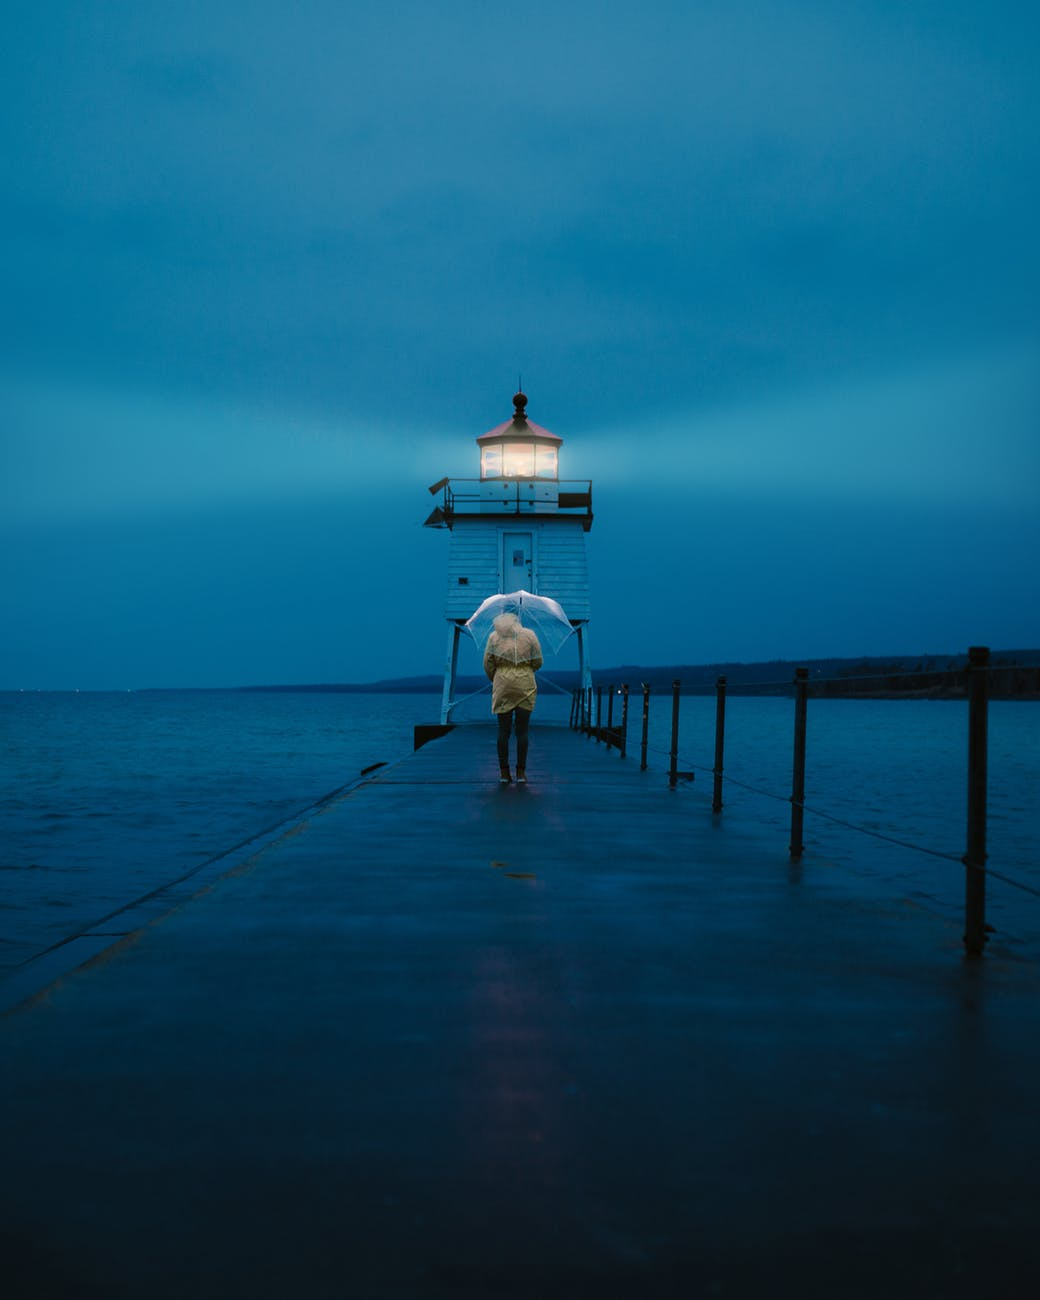 photo of a person standing on footbridge leading to a lighthouse